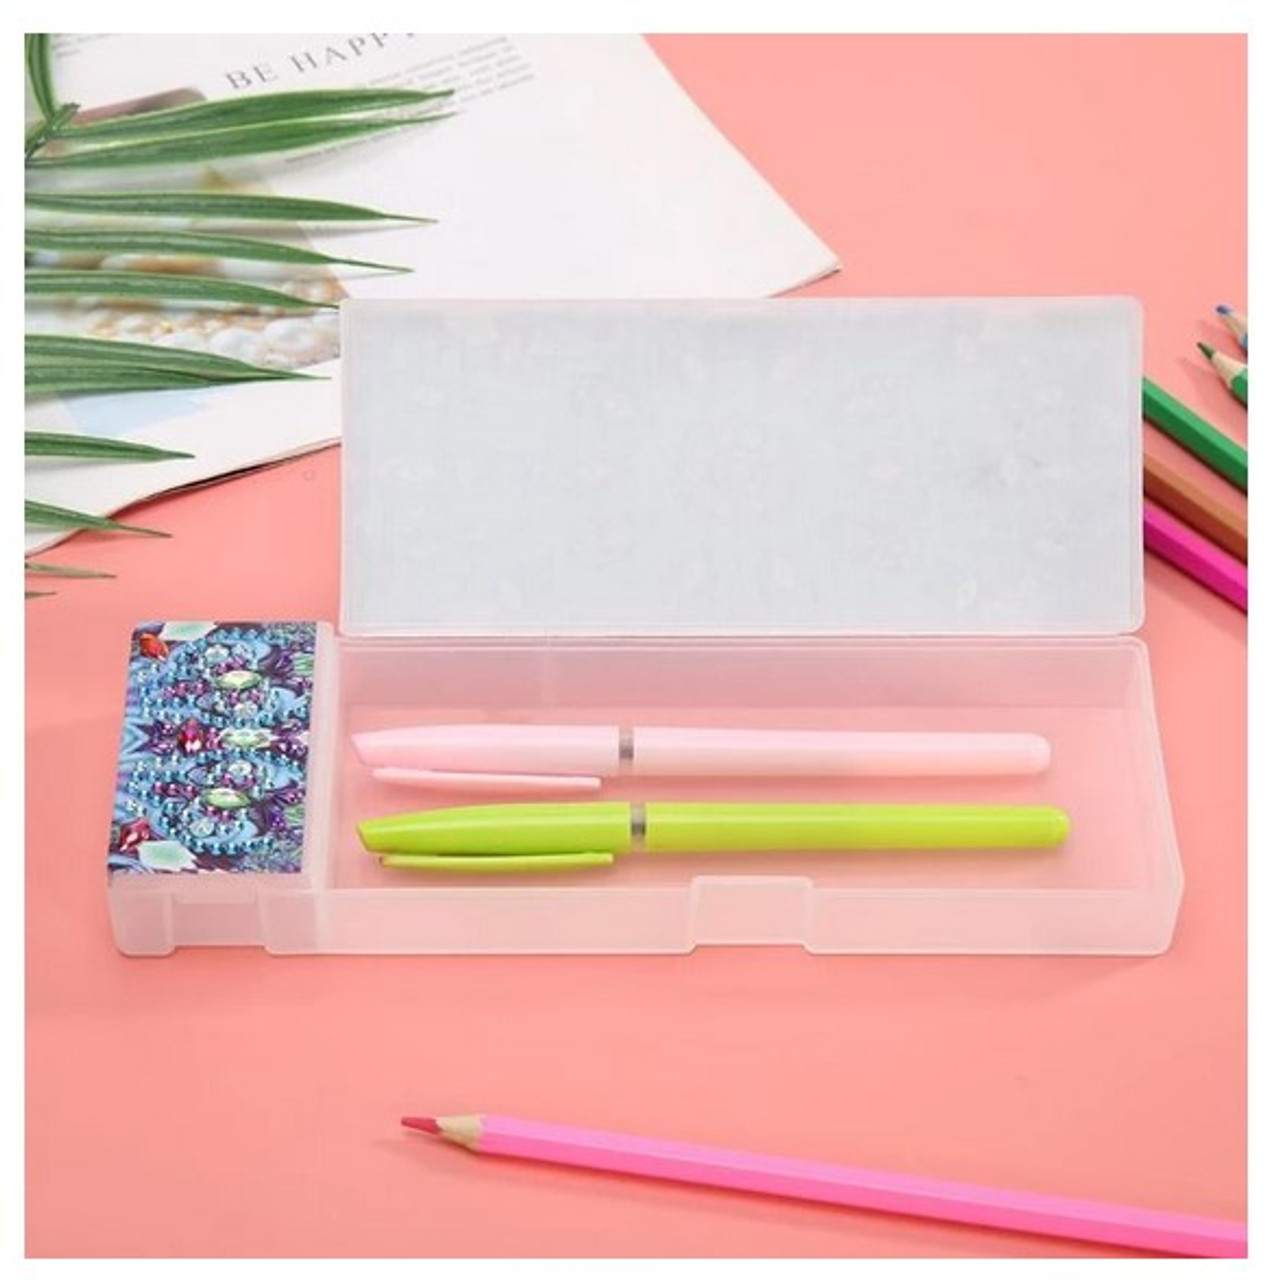 5D Diamond Painting Pencil Case KB001 - Blue Flower